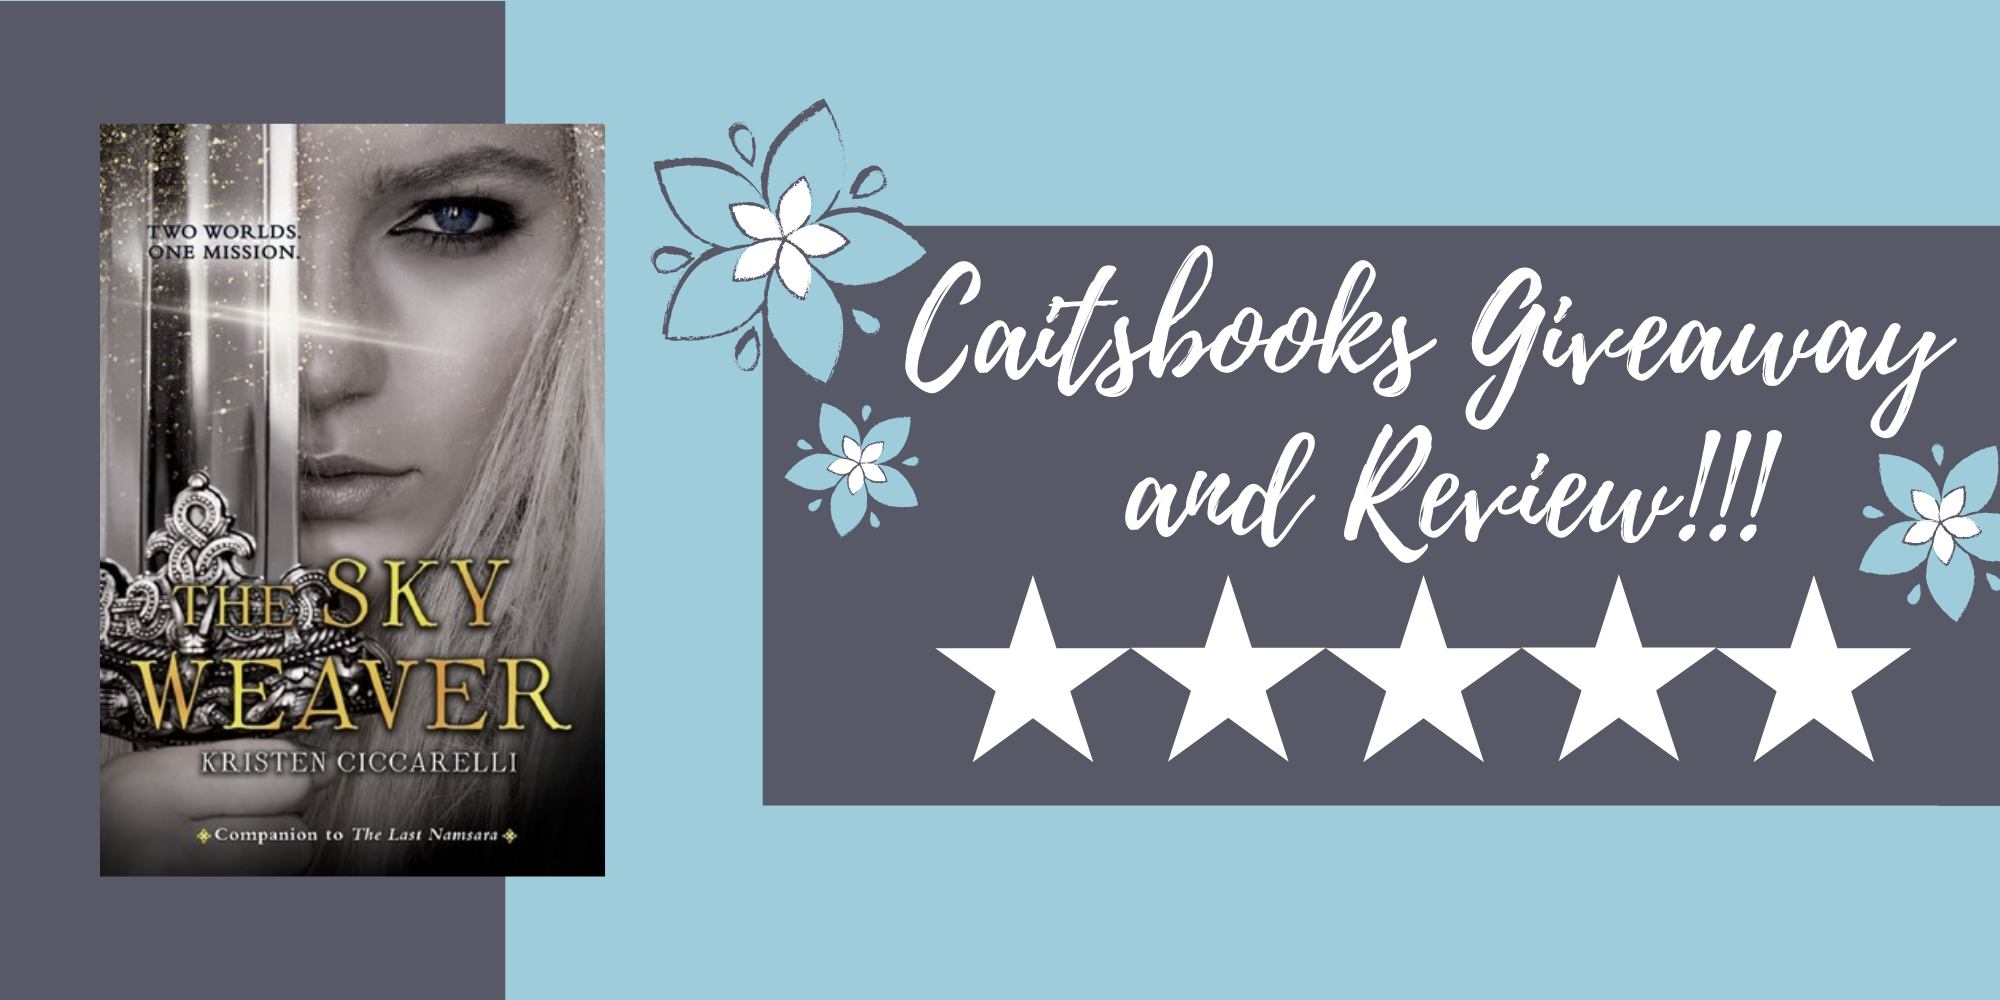 Caitsbooks Reviews The Sky Weaver by Kristen Ciccarelli - 5 Stars + Giveaway